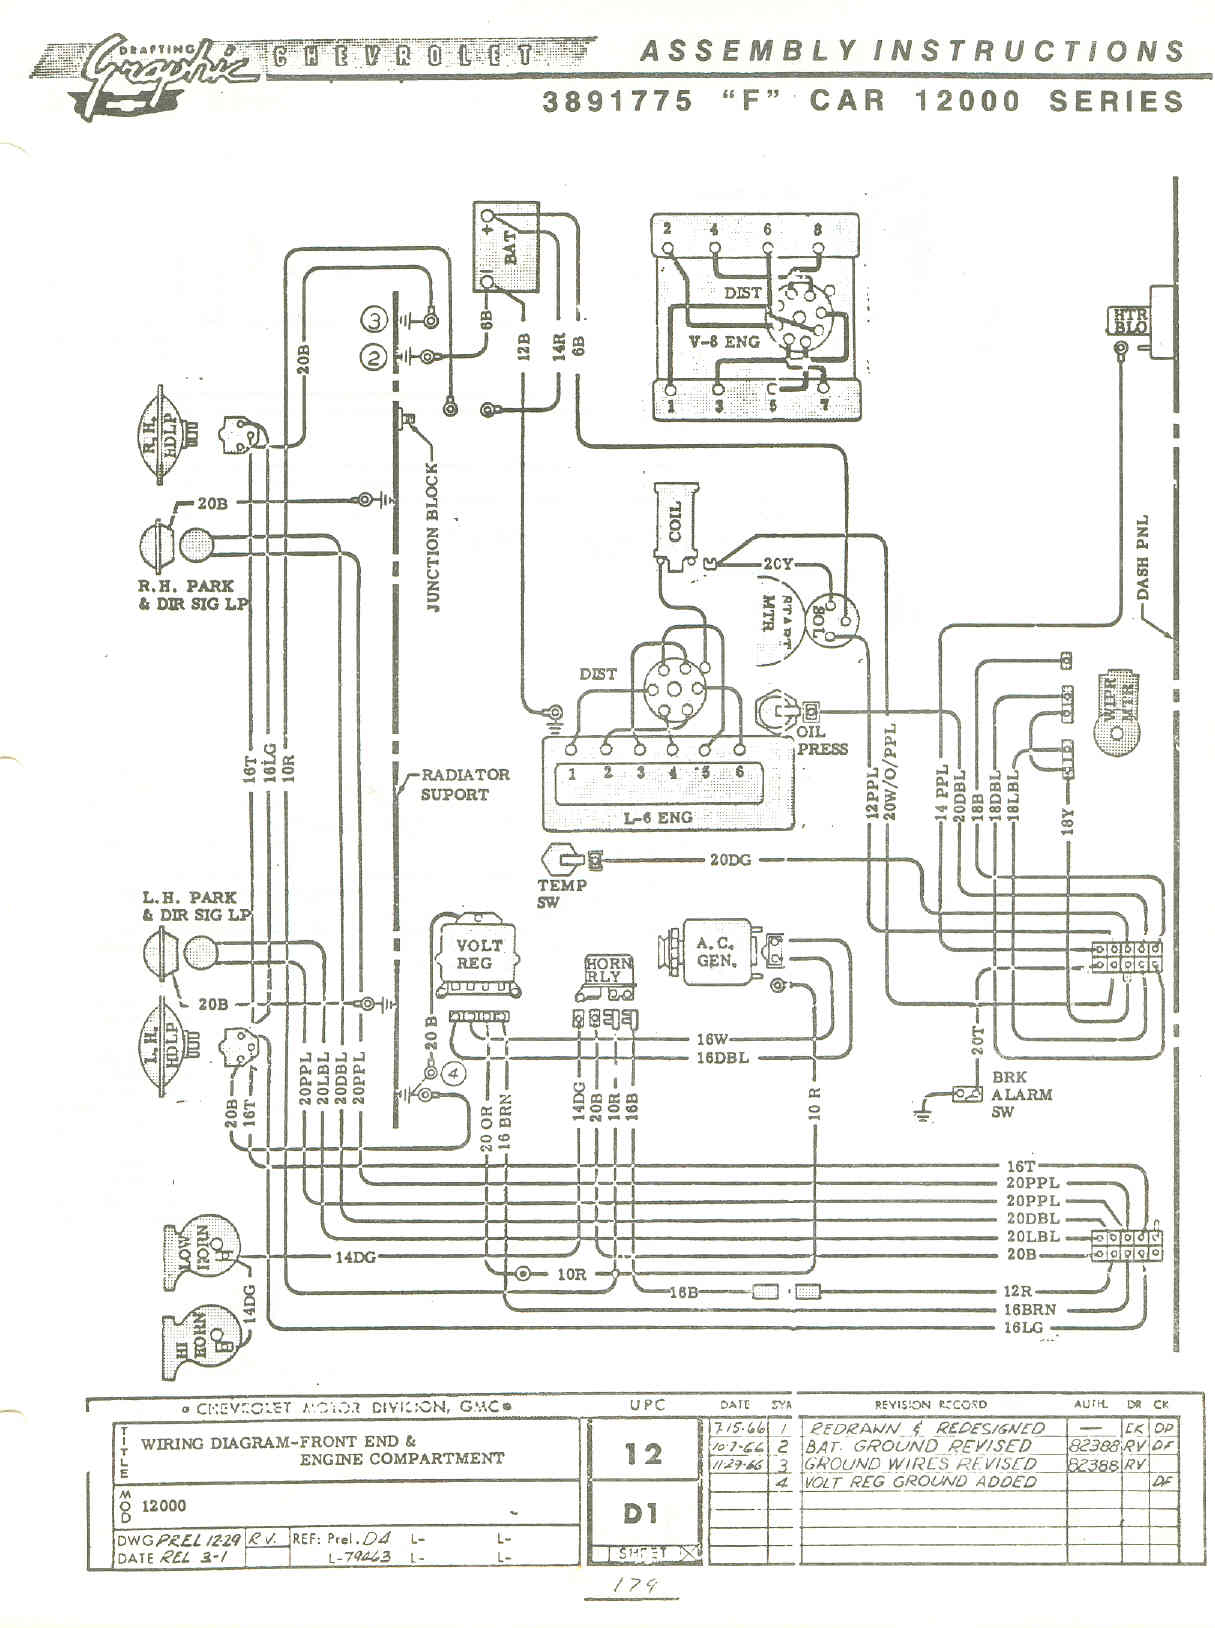 1980 corvette wiring diagram pdf 1980 image wiring 1969 corvette console diagram wiring schematic 1969 auto wiring on 1980 corvette wiring diagram pdf